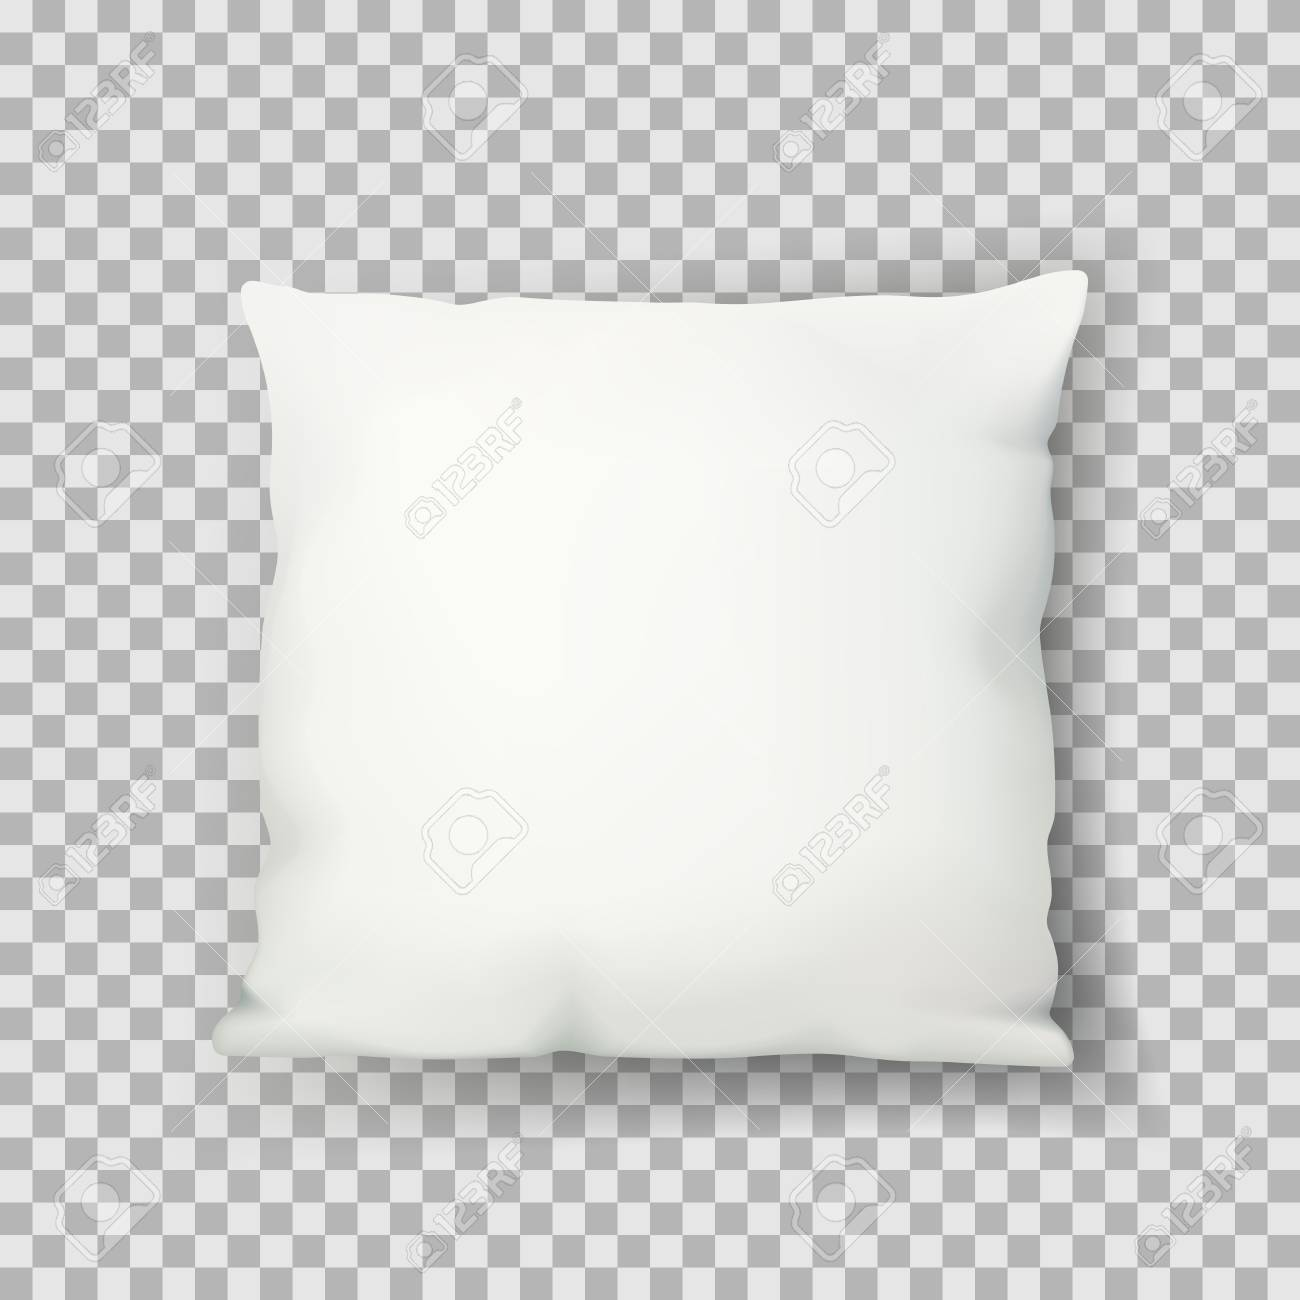 vector realistic 3d illustration of white square sleeping pillow